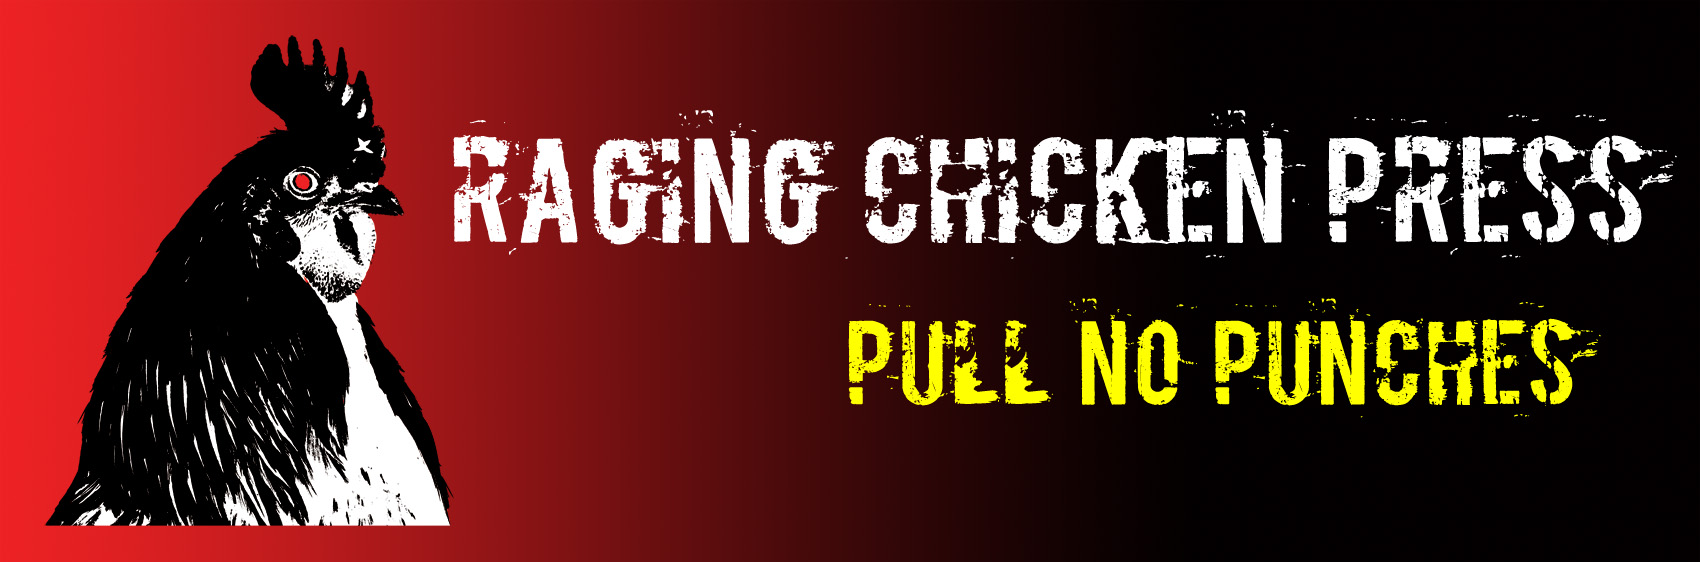 RCP-Pull-No-Punches-t-shirt-banner.jpg